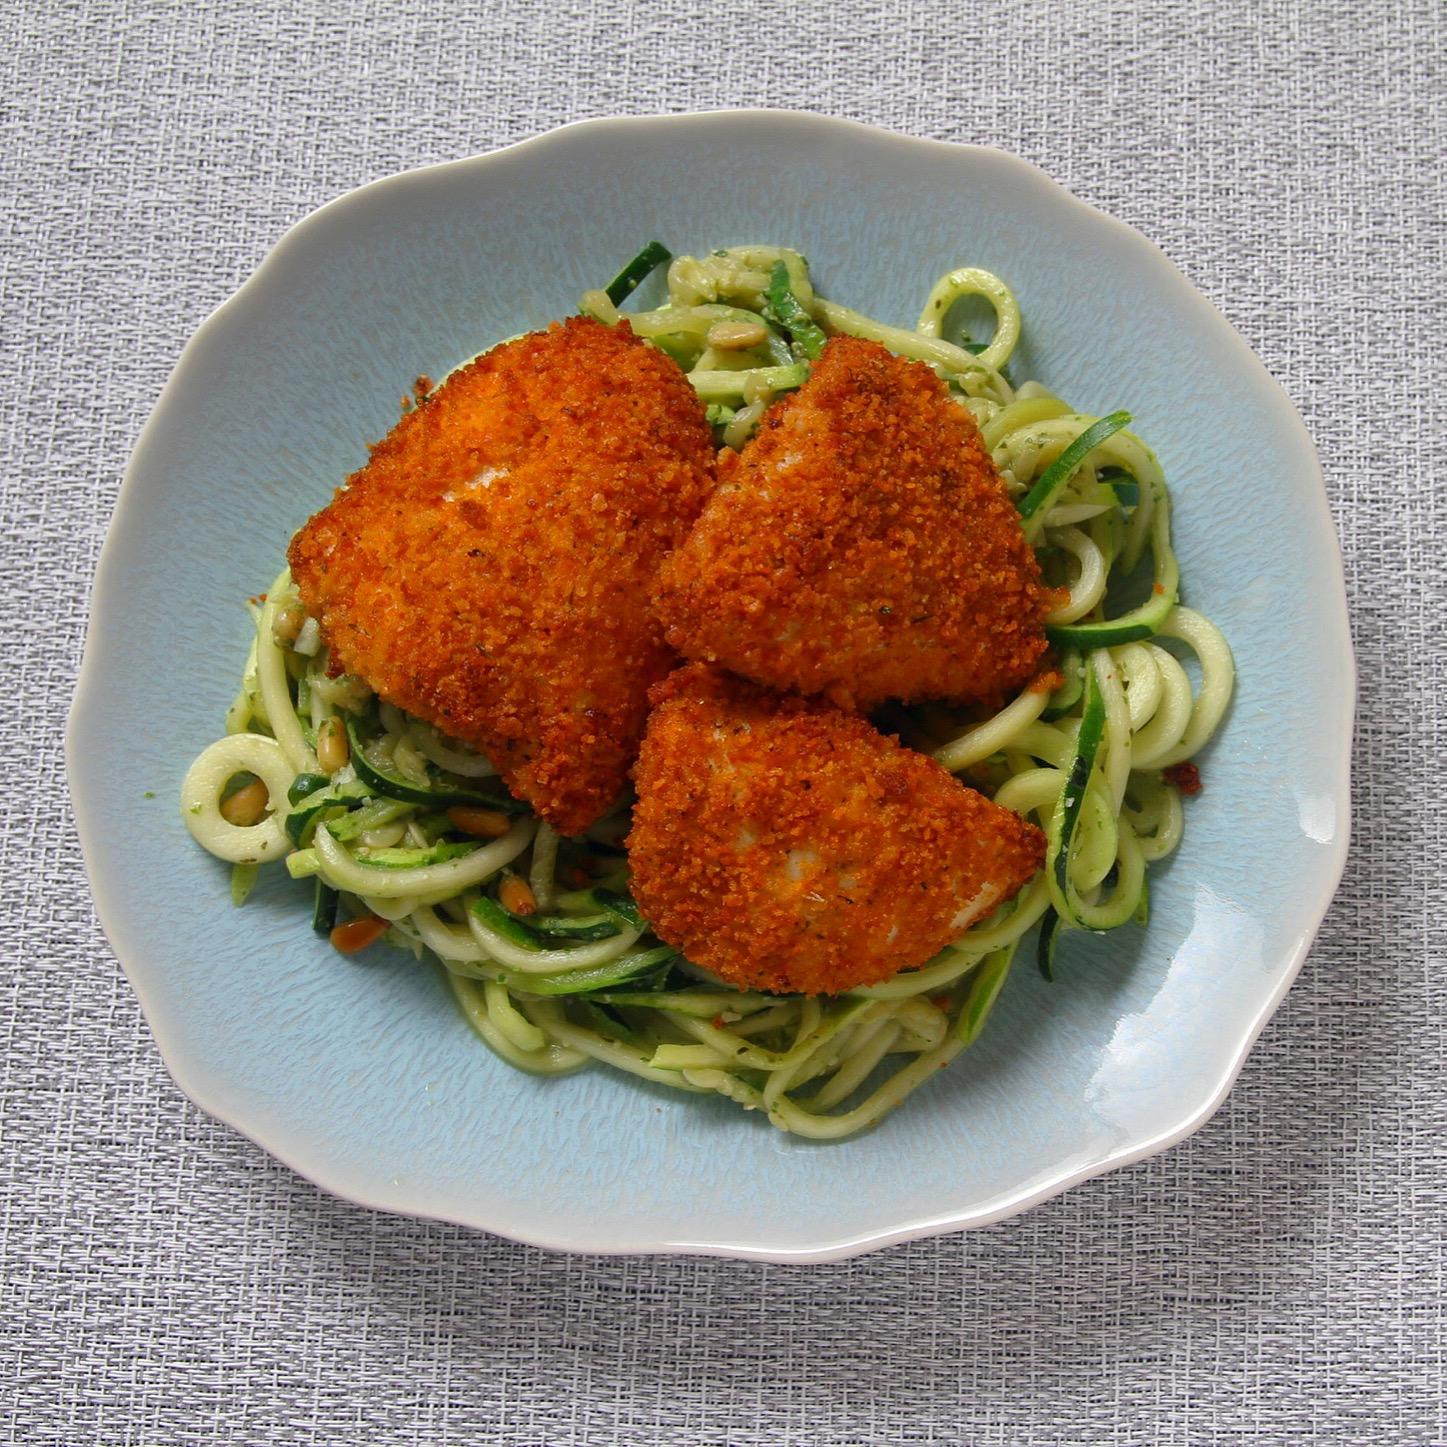 Crispy spicy oven baked chicken with pesto zucchini noodles.